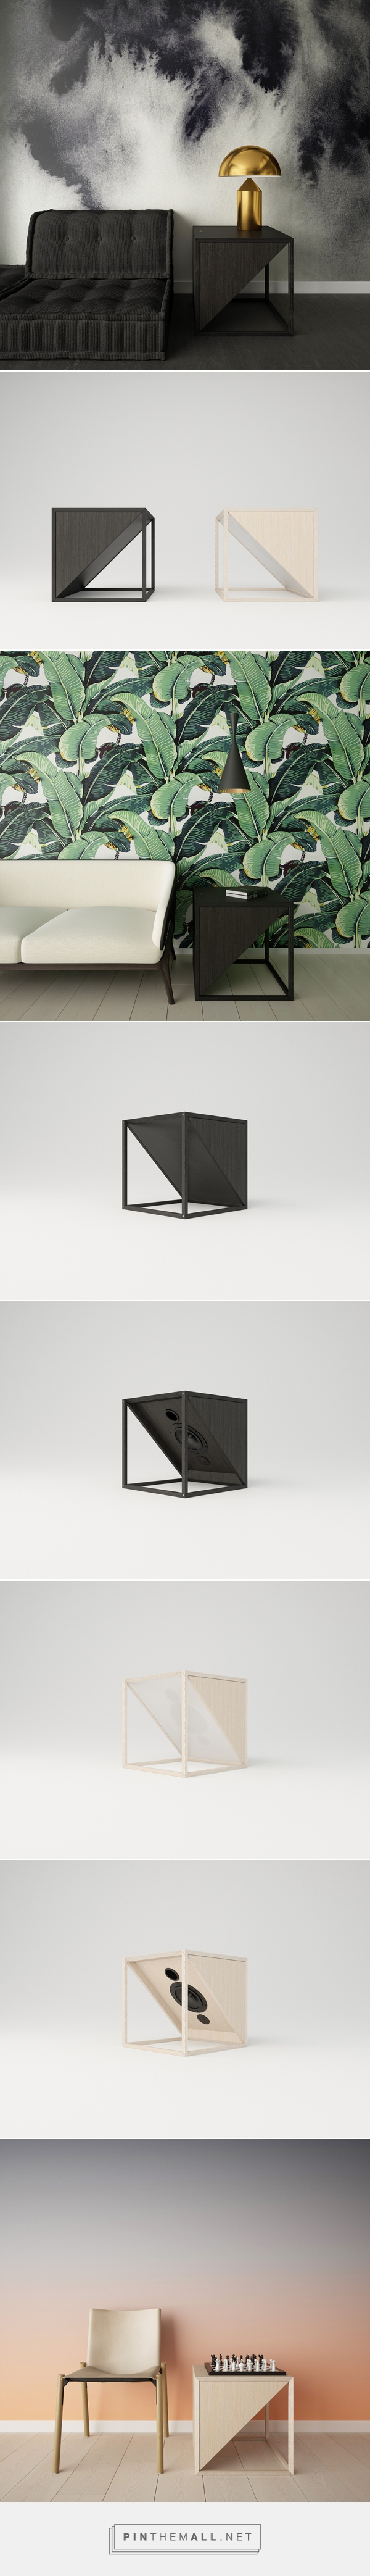 Jlaus debut release is both a hifi sound system and minimal side